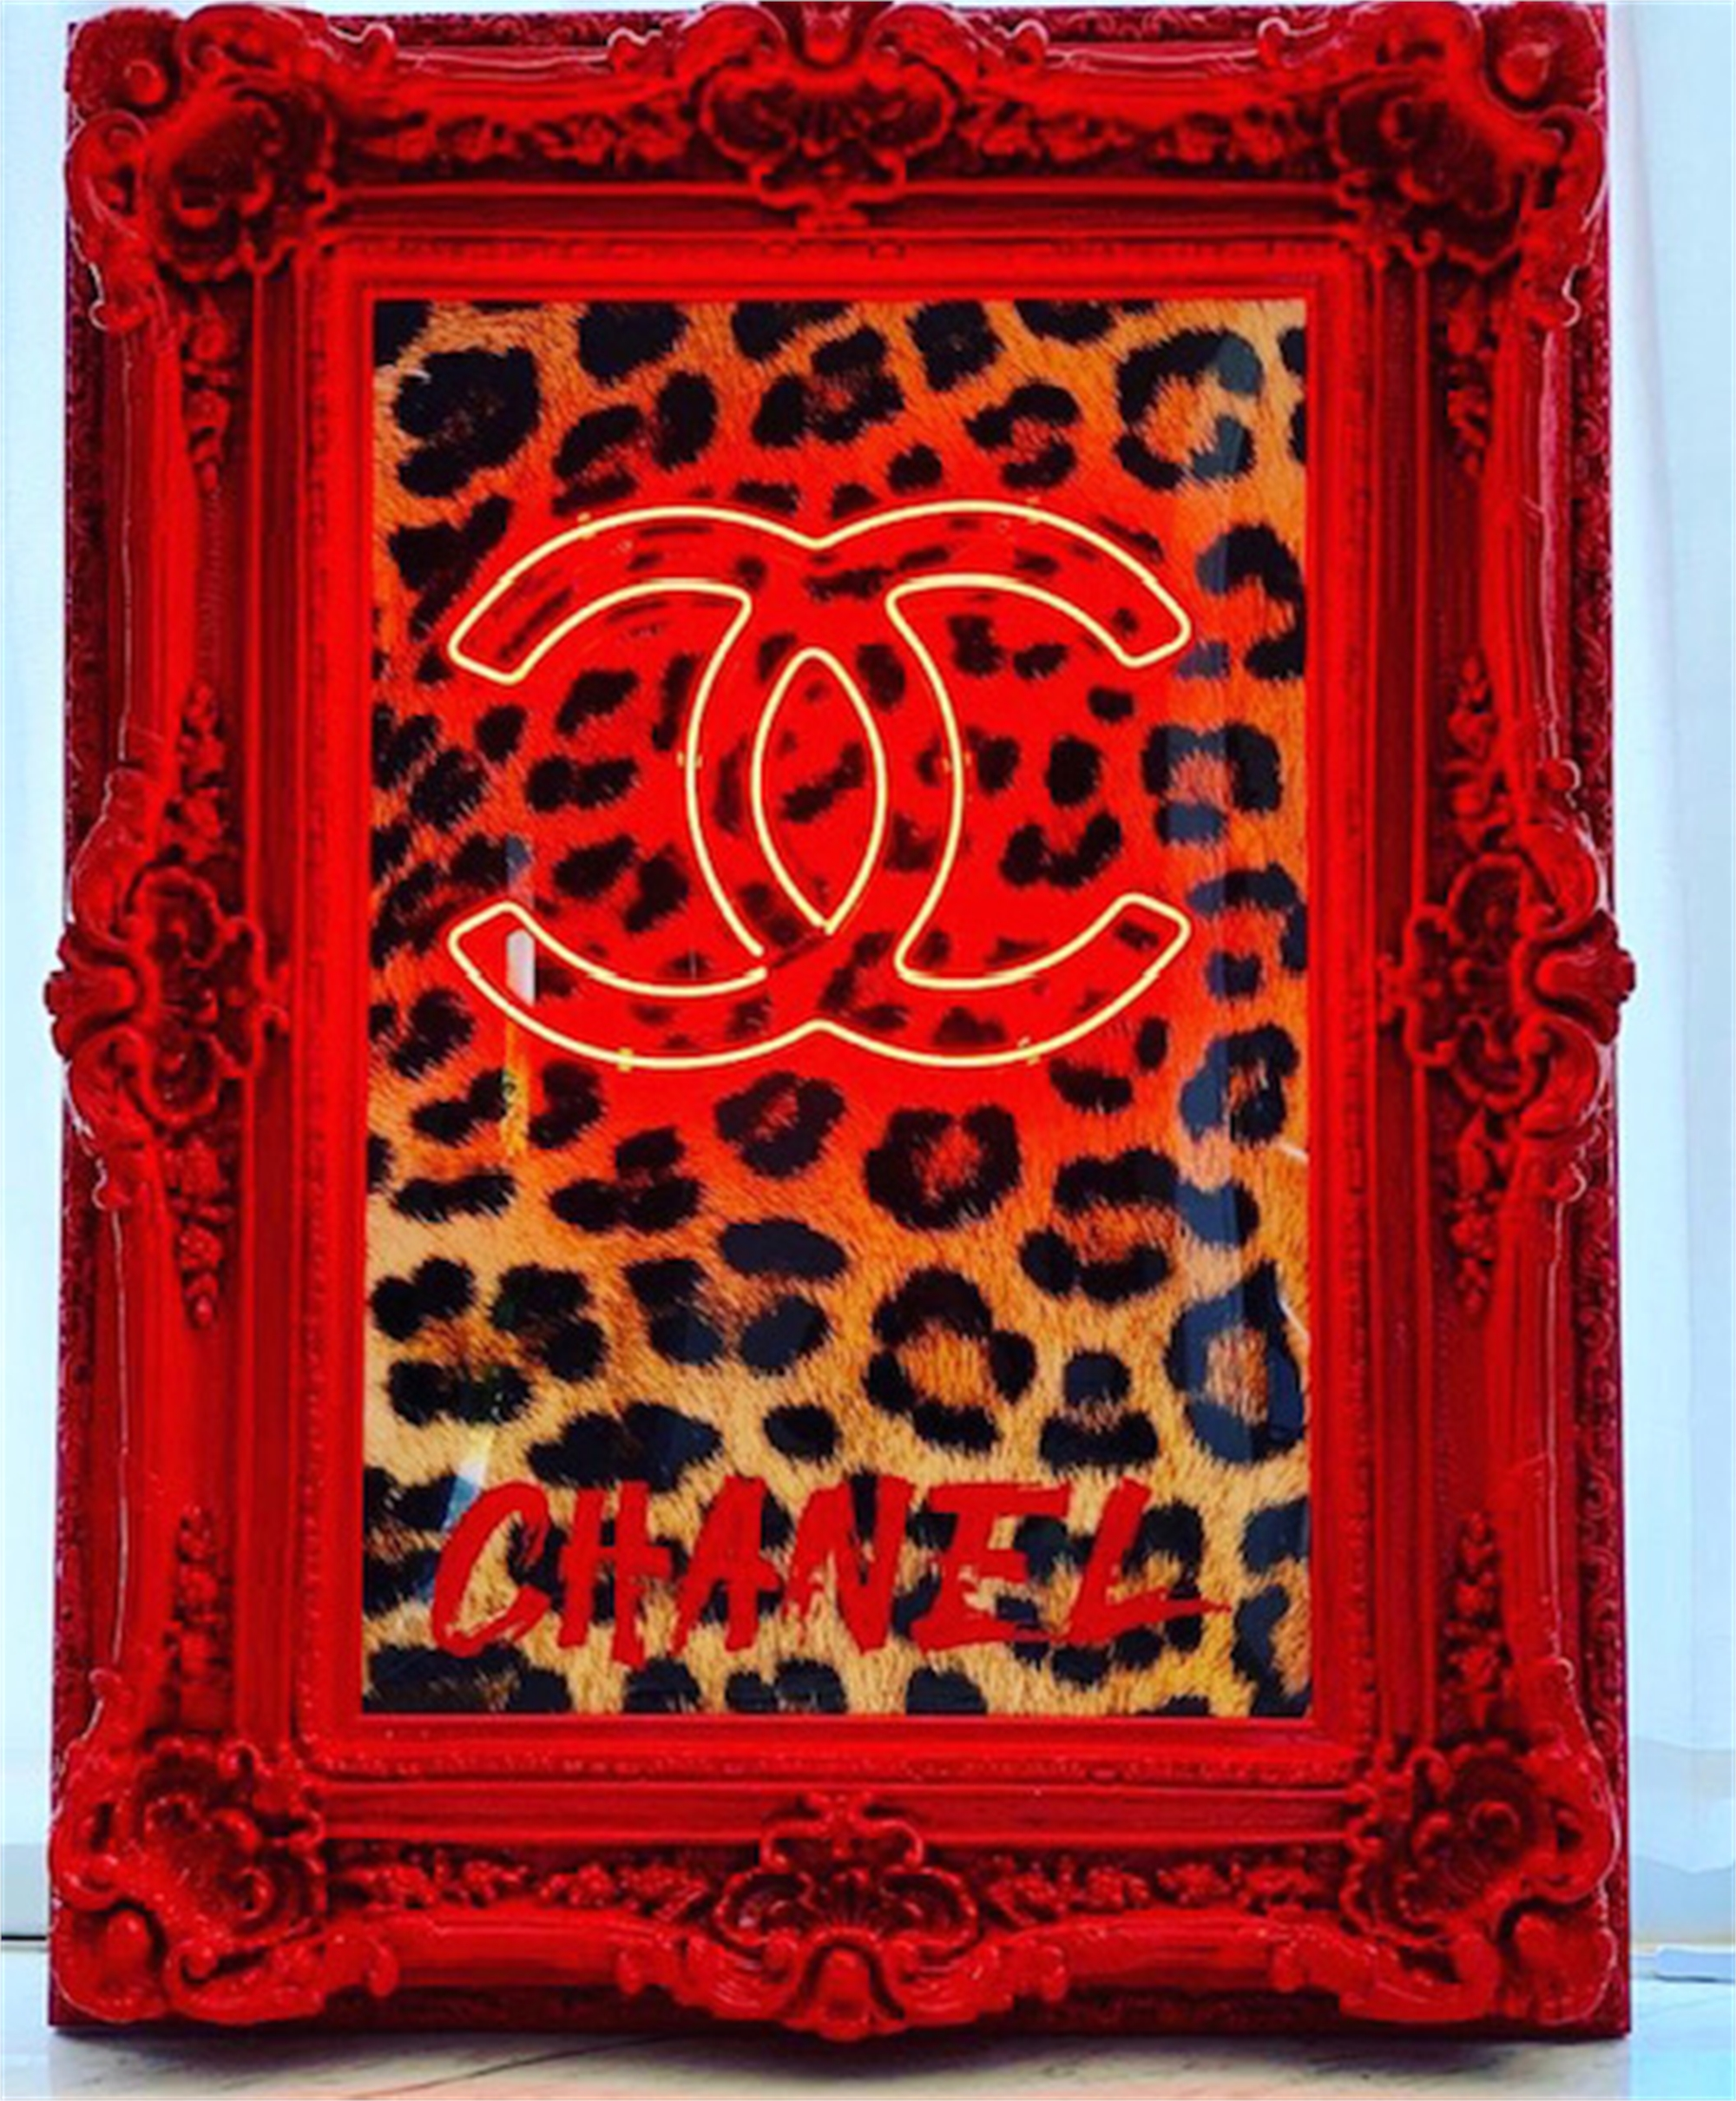 Wild Chanel with Red Frame by Behind Pink Walls